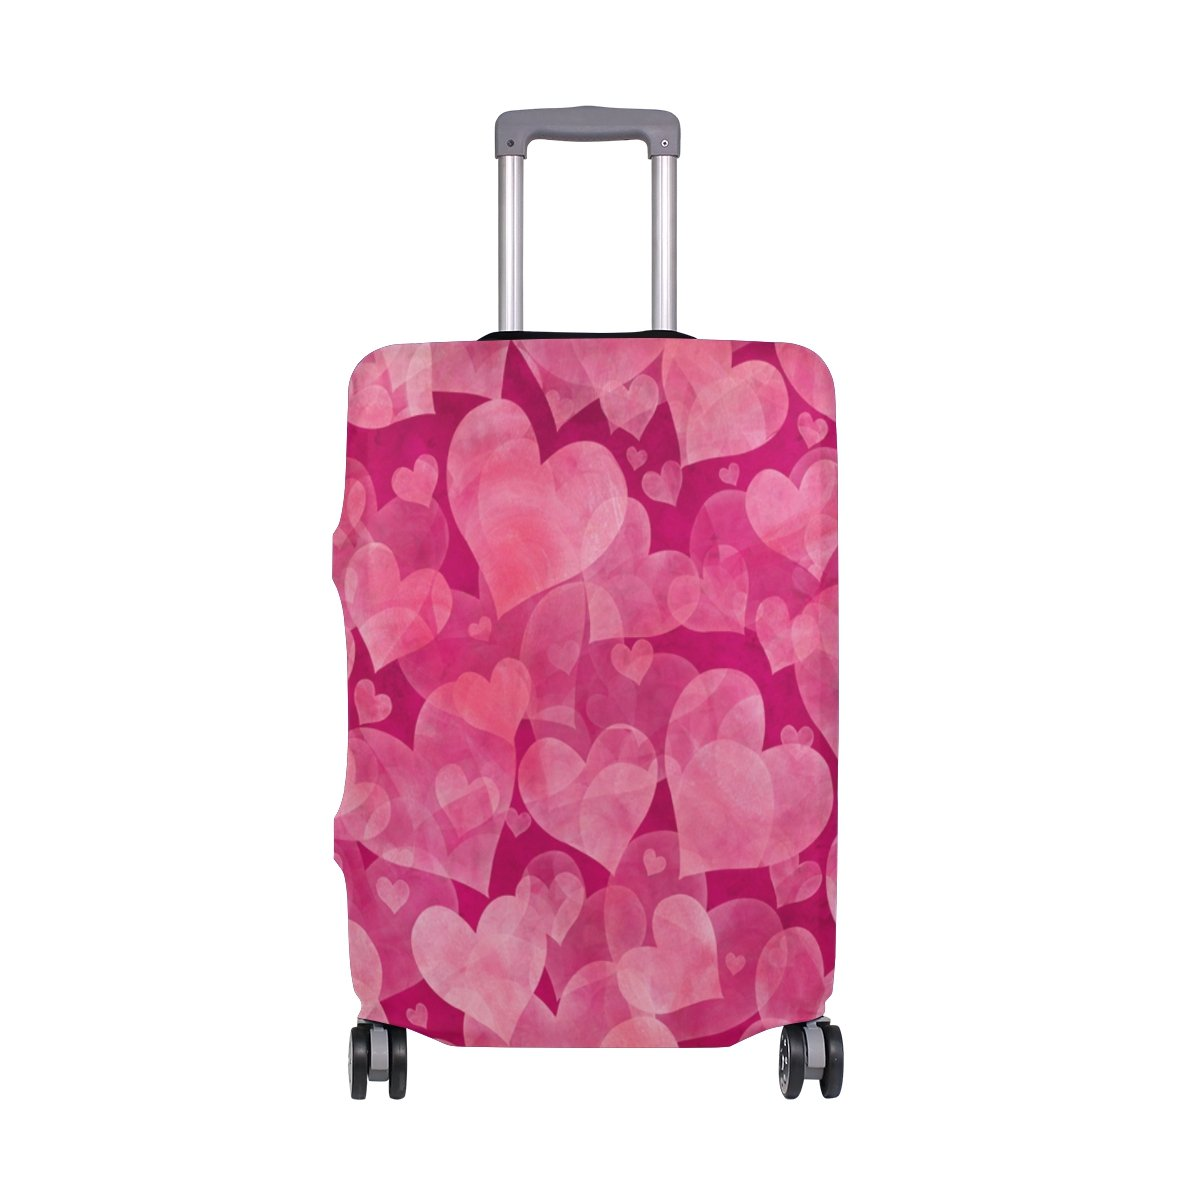 ALAZA Hearts Valentine's Day Wedding Luggage Cover Fits 18-22 Inch Suitcase Spandex Travel Protector S